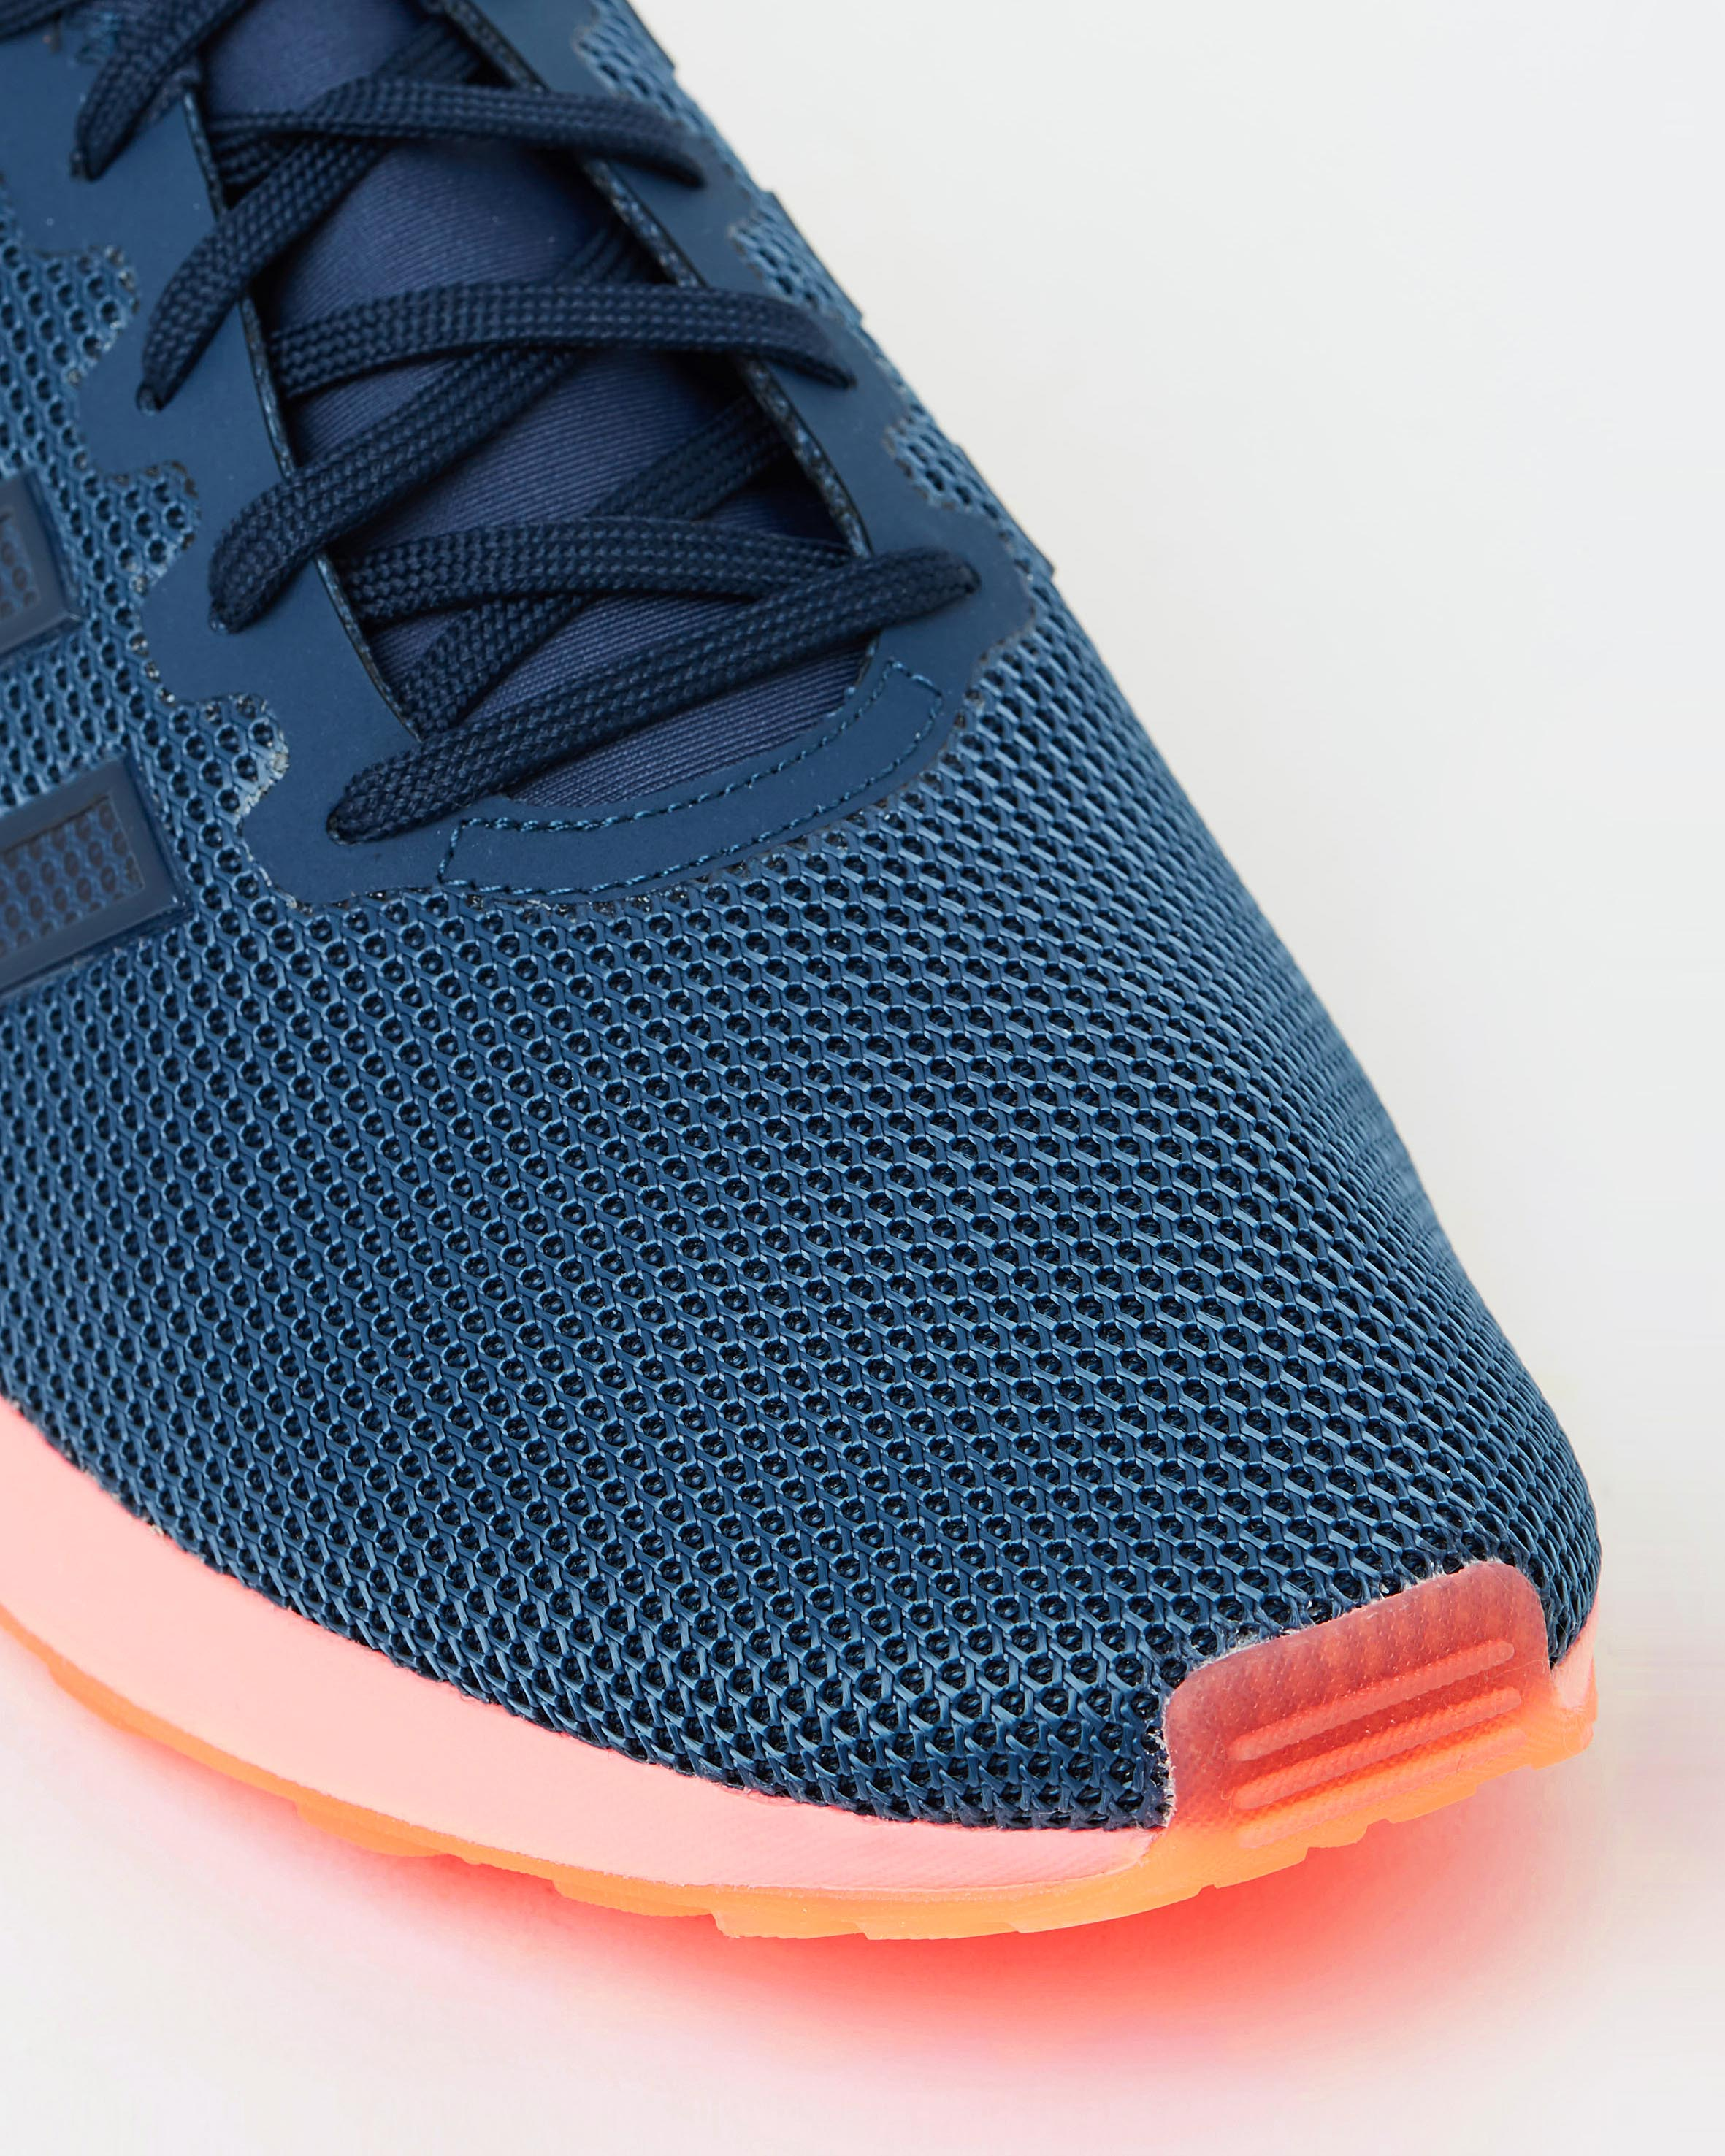 Adidas Zx Flux Orange And Blue